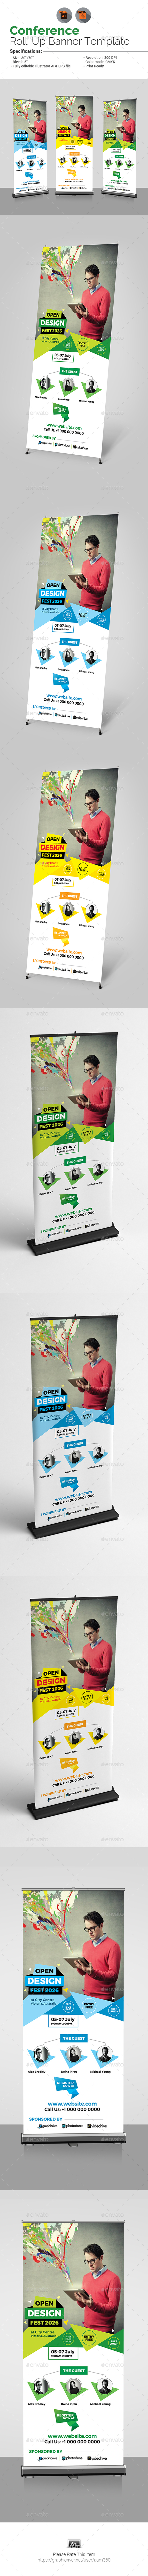 Event Summit Roll-Up Banner - Signage Print Templates